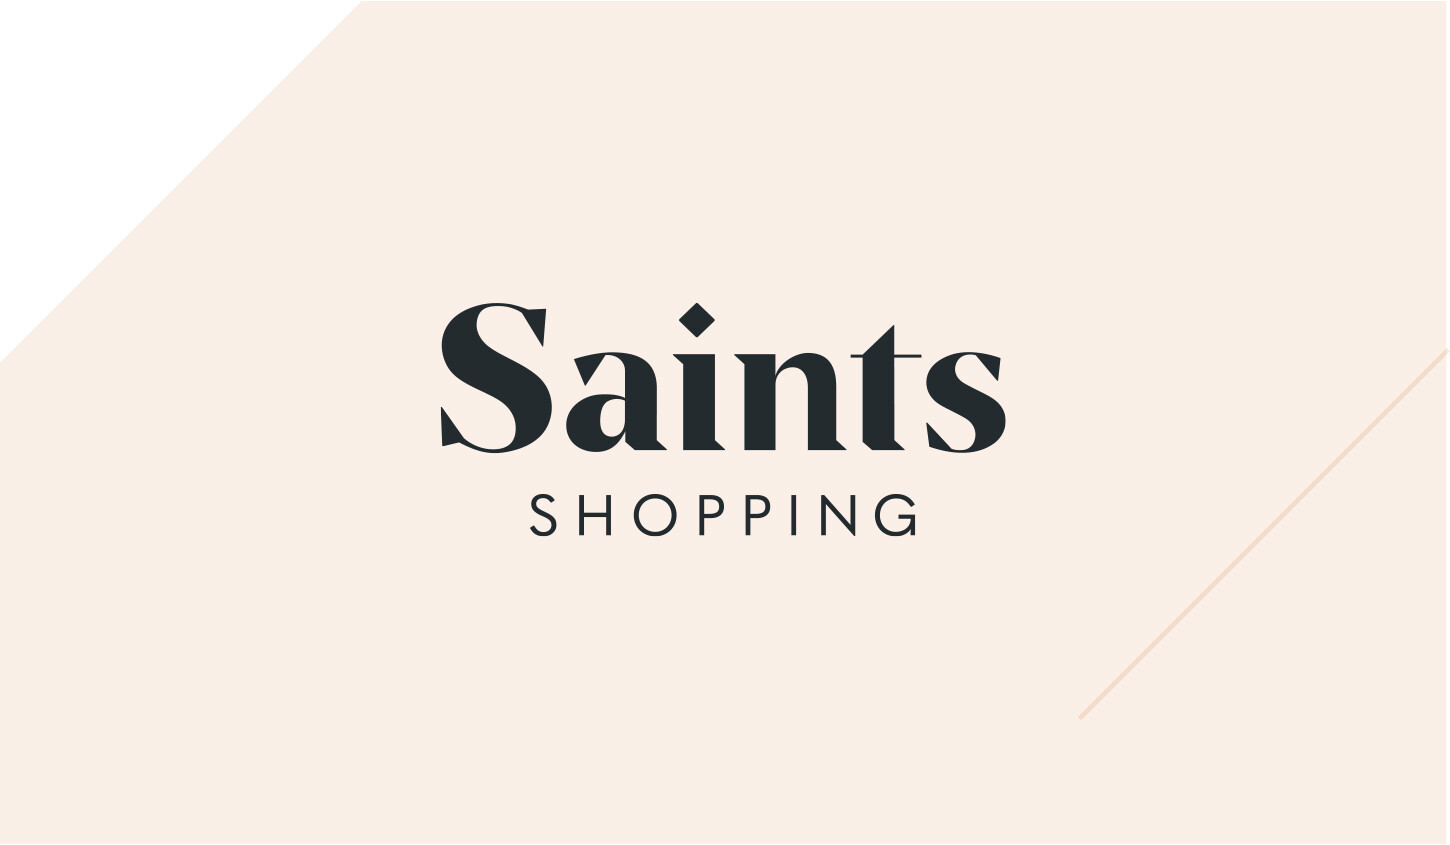 saints shopping logo designed by algo mas